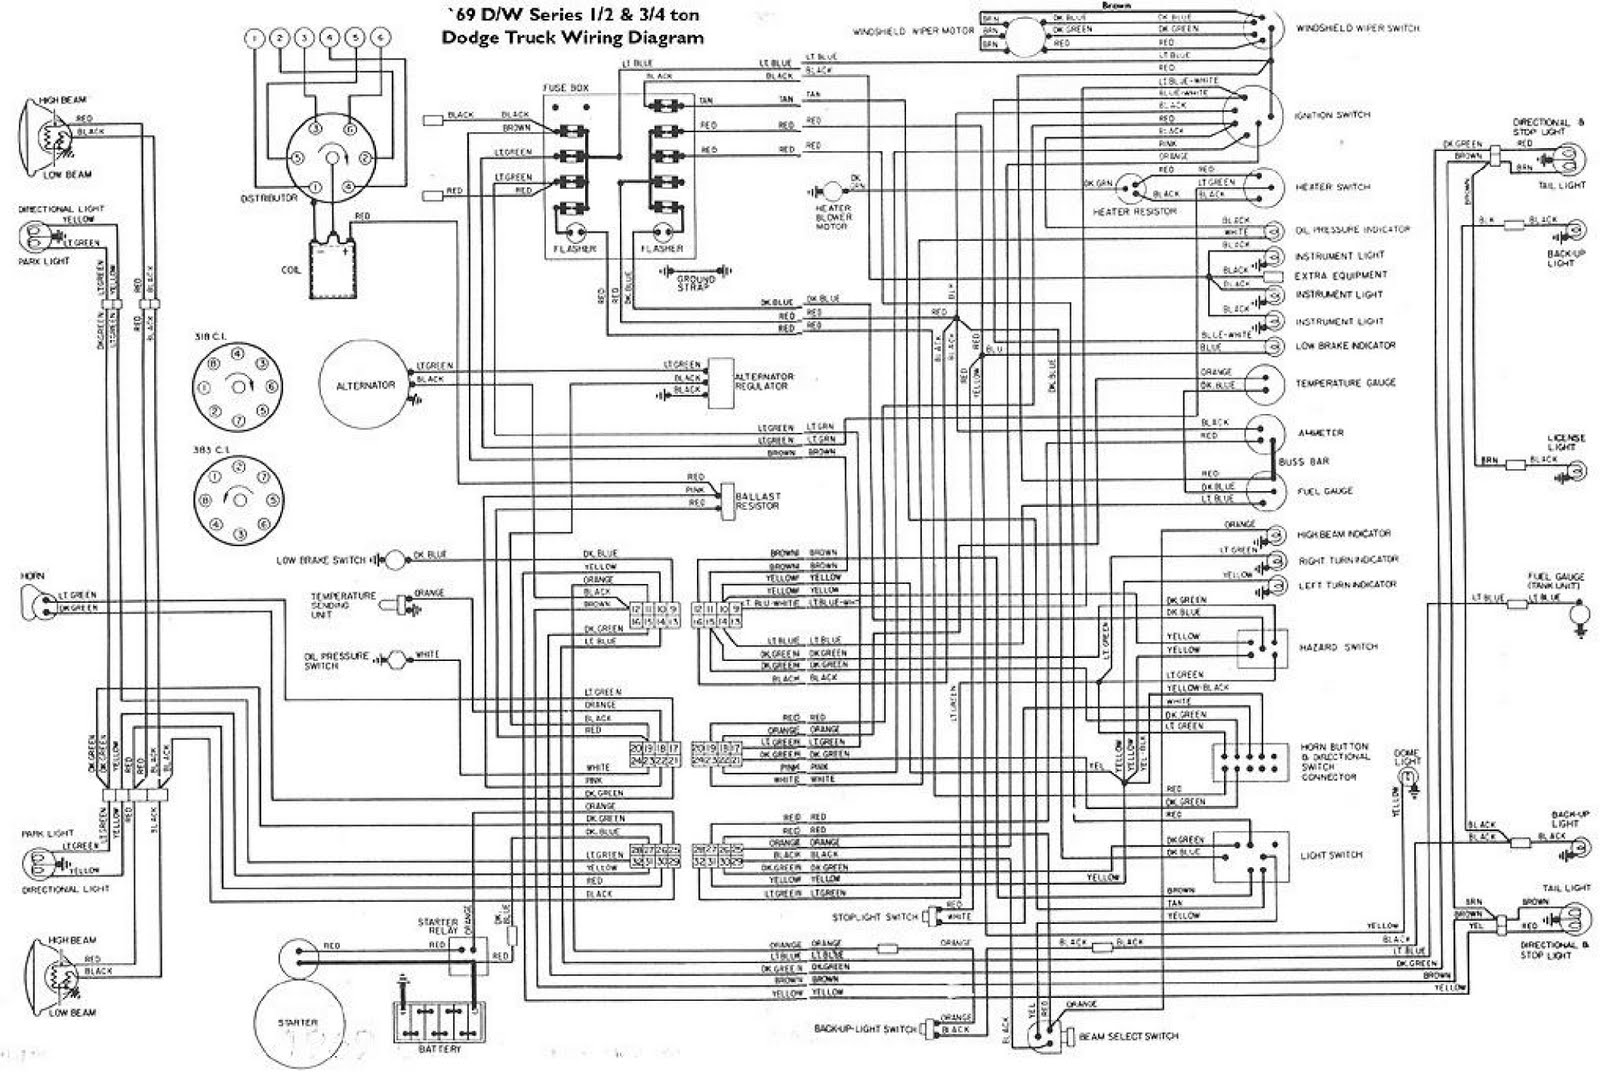 1973 Dodge Truck Wiring Diagram - Fk.ogewqoua.slankaviktcenter.info on 1969 dodge charger toyota, dodge dakota tail light wiring diagram, 1965 barracuda wiring diagram, 1998 gmc jimmy ignition wiring diagram, dodge challenger wiring diagram, 1966 dodge charger wiring diagram, 1968 camaro convertible wiring diagram, 1946 dodge power wagon wiring diagram, 1967 dodge charger wiring diagram, 1969 dodge charger rear suspension, dodge viper wiring diagram, 1928 ford model a wiring diagram, 1978 dodge magnum wiring diagram, 1969 dodge charger drive shaft, 1965 dodge coronet wiring diagram, 1973 dodge charger wiring diagram, 1966 dodge coronet wiring diagram, 1970 chevrolet chevelle wiring diagram, 1960 chevy impala wiring diagram, 2012 dodge charger radio wiring diagram,